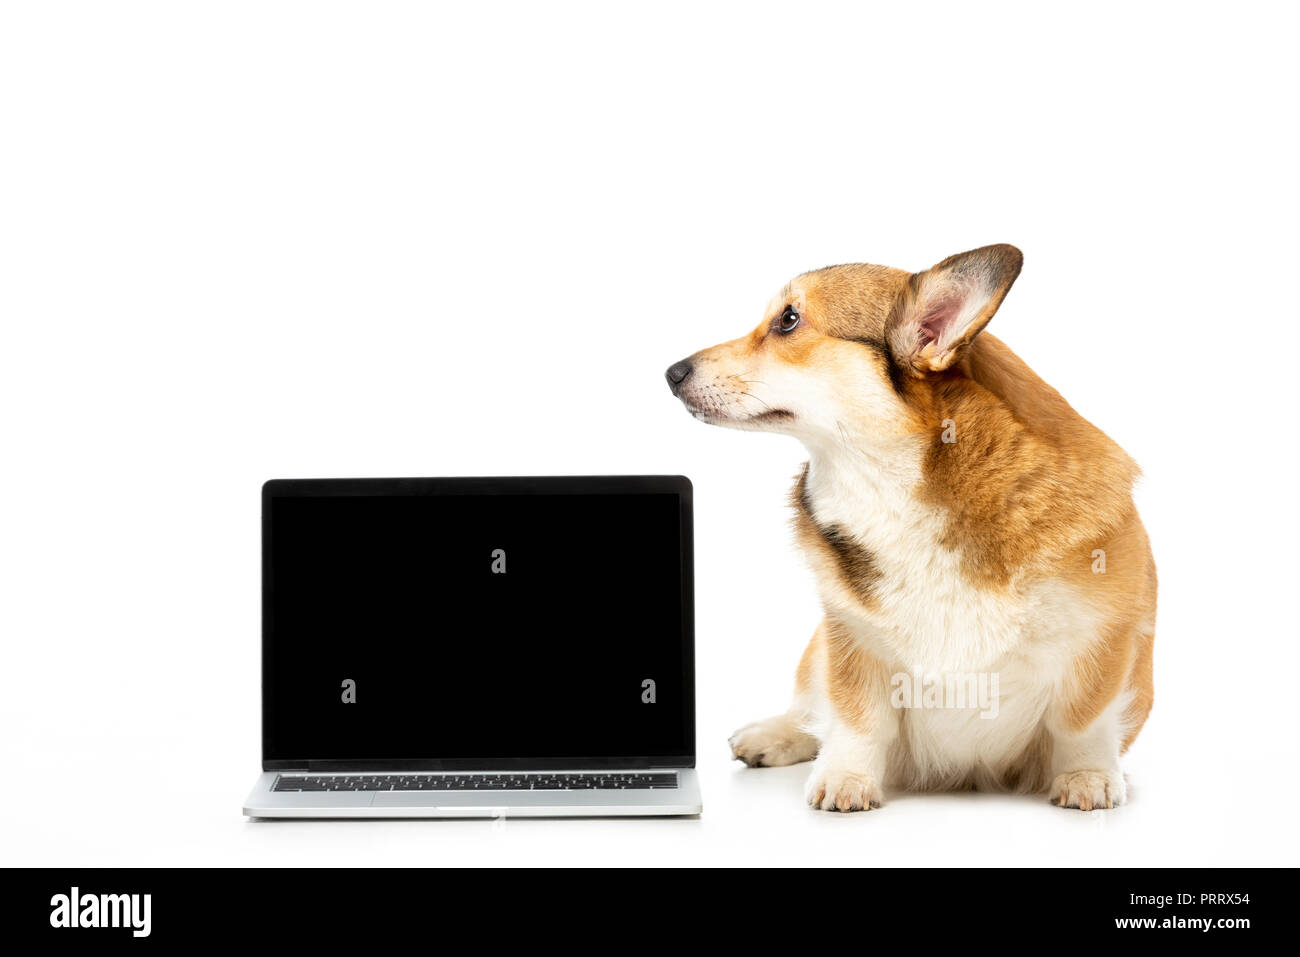 corgi looking away and sitting near laptop with blank screen isolated on white background - Stock Image